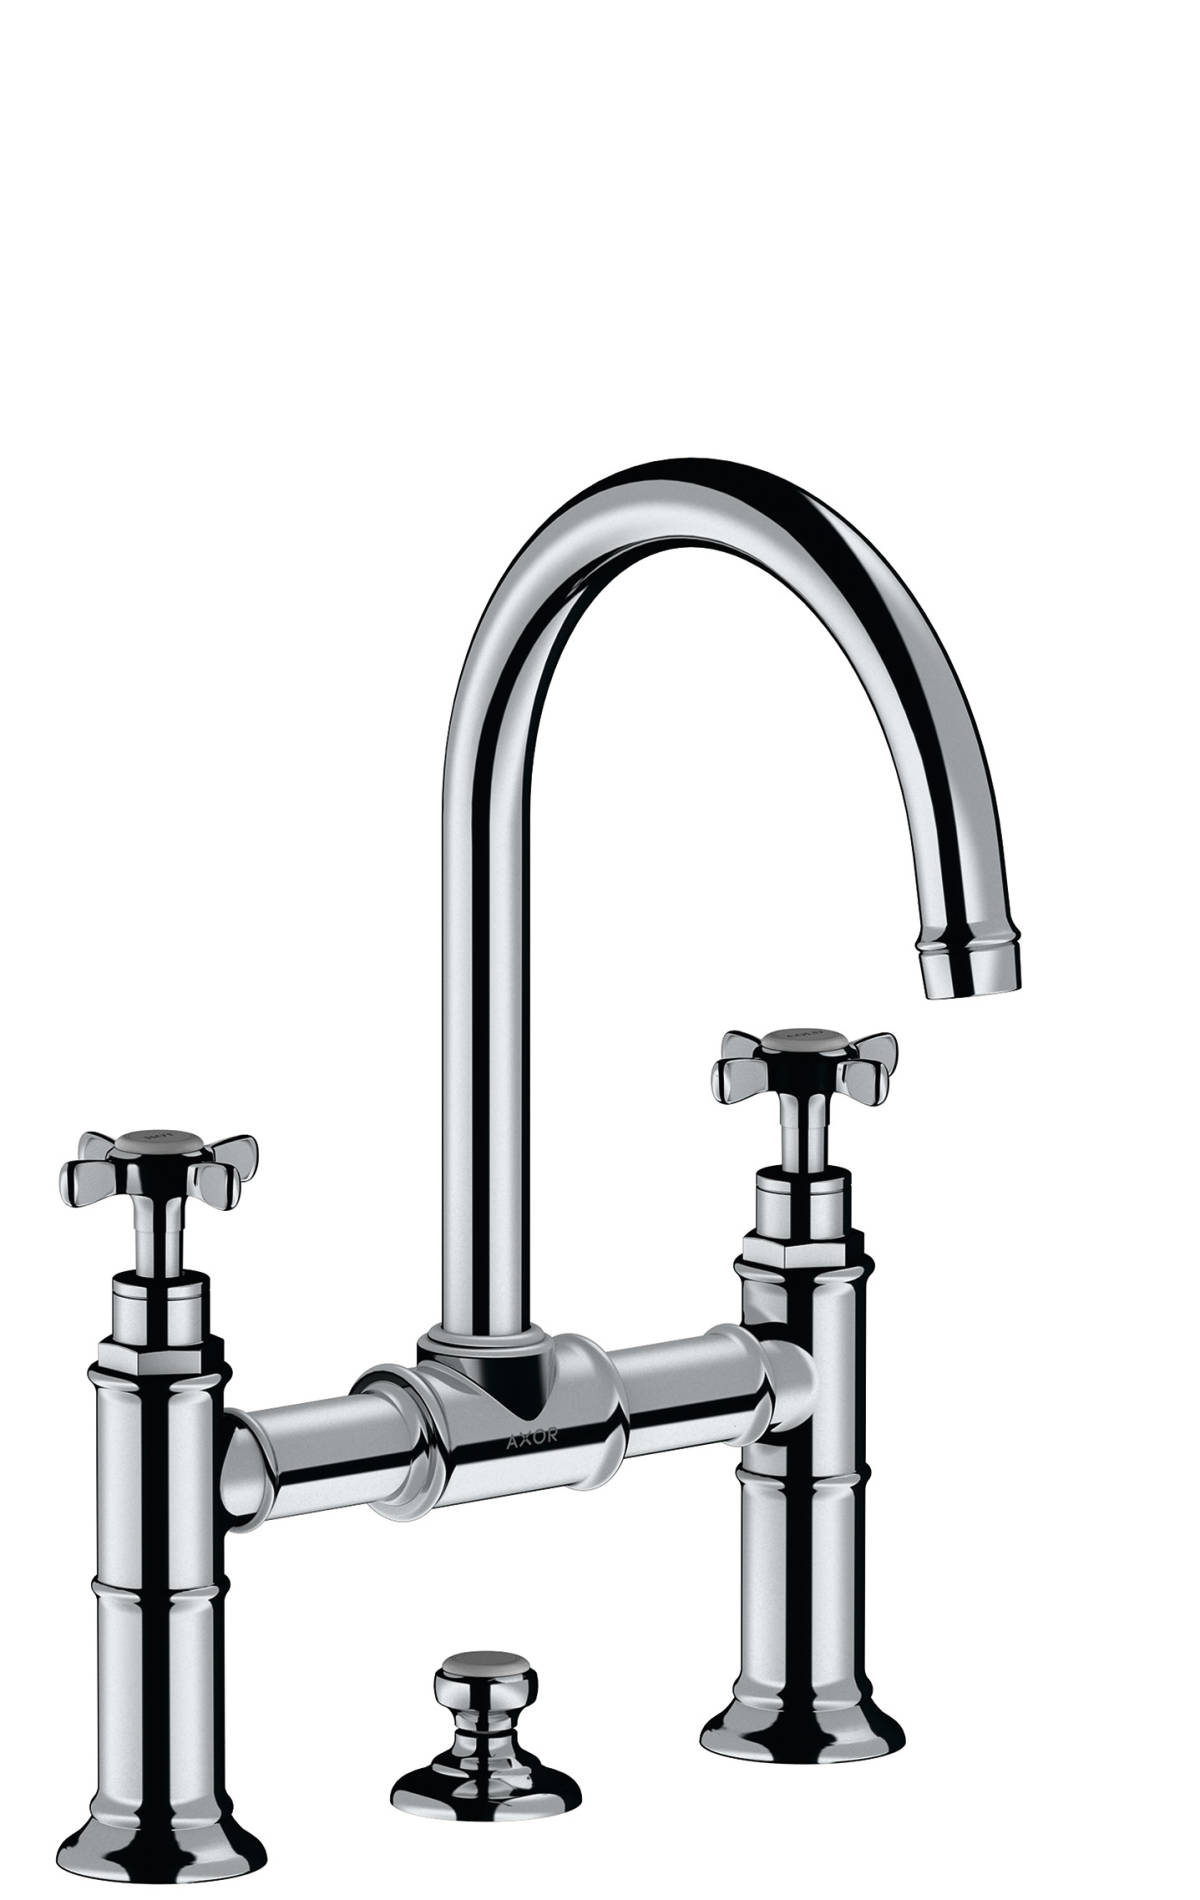 2-handle basin mixer 220 with cross handles and pop-up waste set, Polished Chrome, 16510020